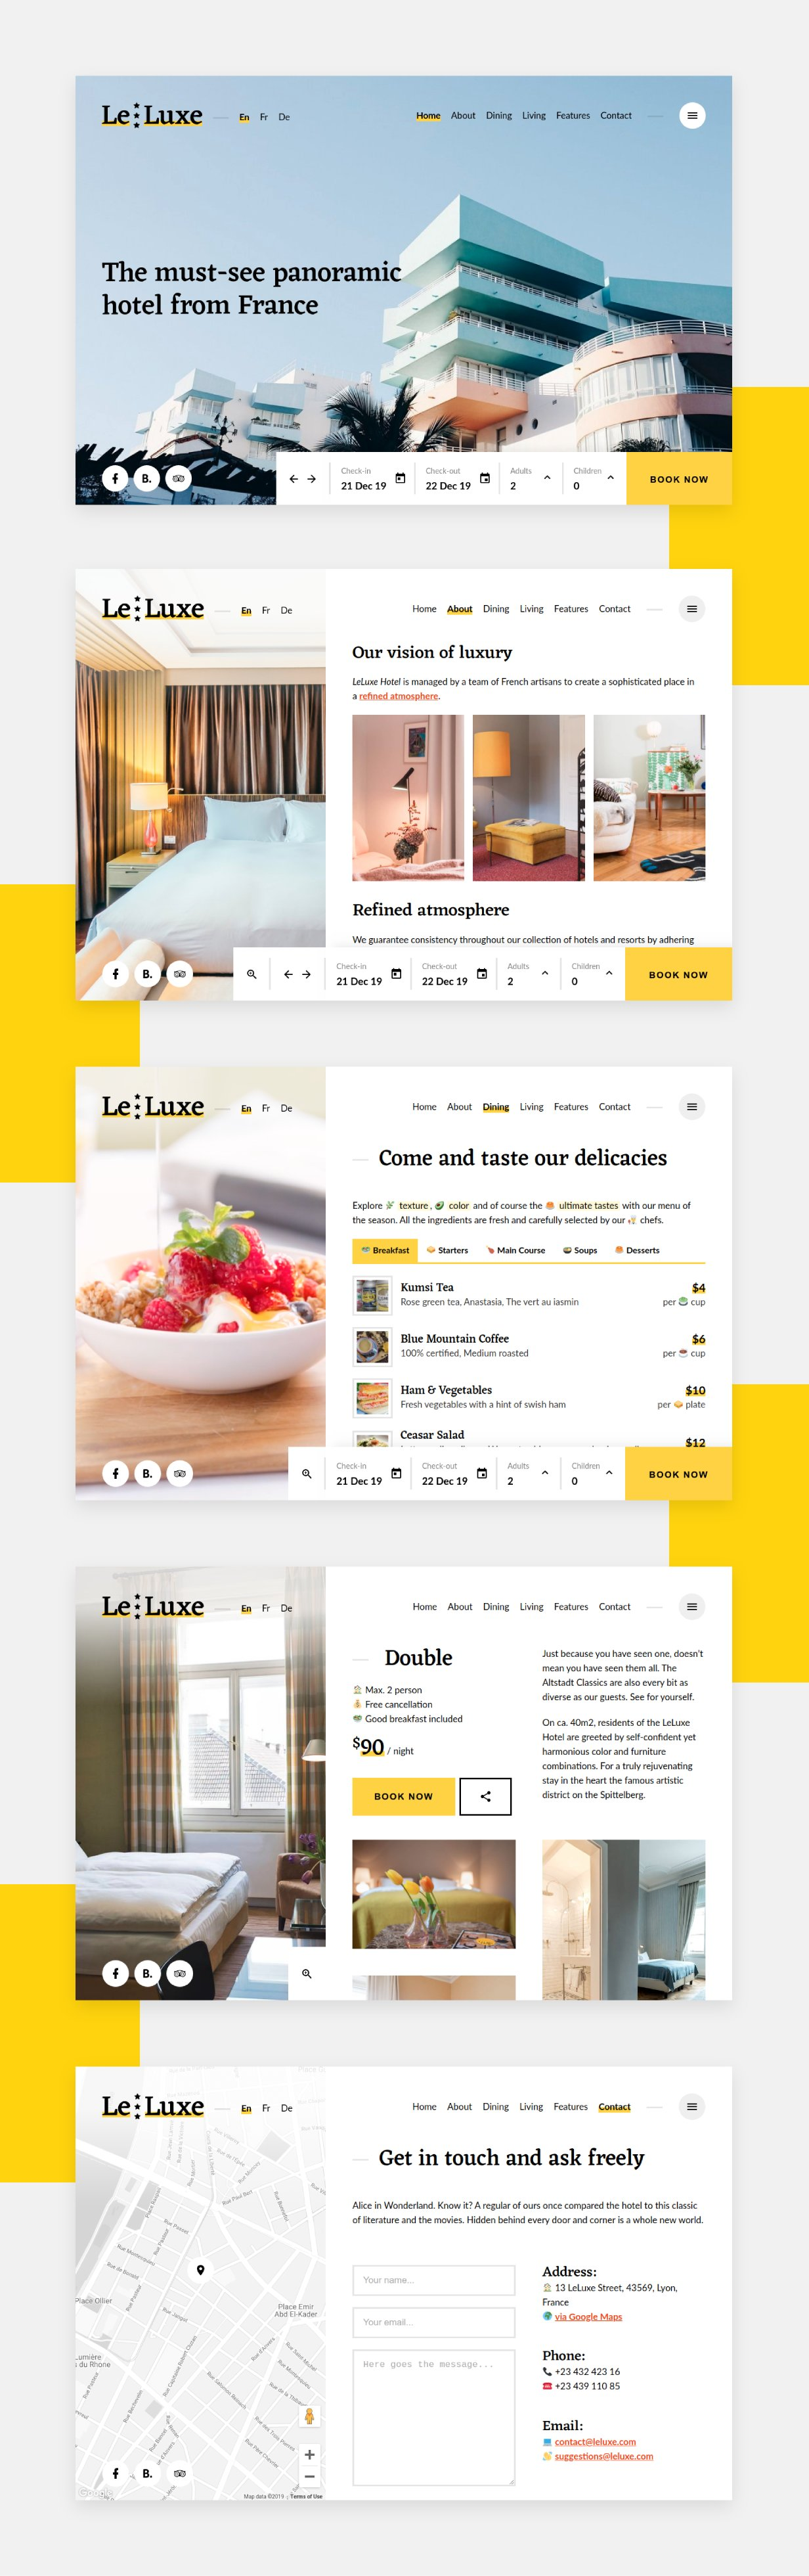 LeLuxe Hotel Theme leluxe - hotel wordpress theme nulled free download LeLuxe – Hotel WordPress Theme Nulled Free Download leluxe theme description